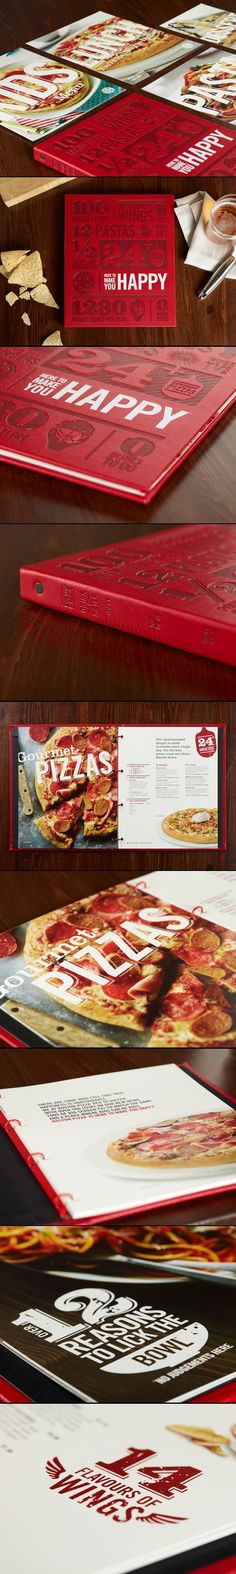 Look past the pizza. See an amazing cover and even theme related spreads. #walsworthgreatest